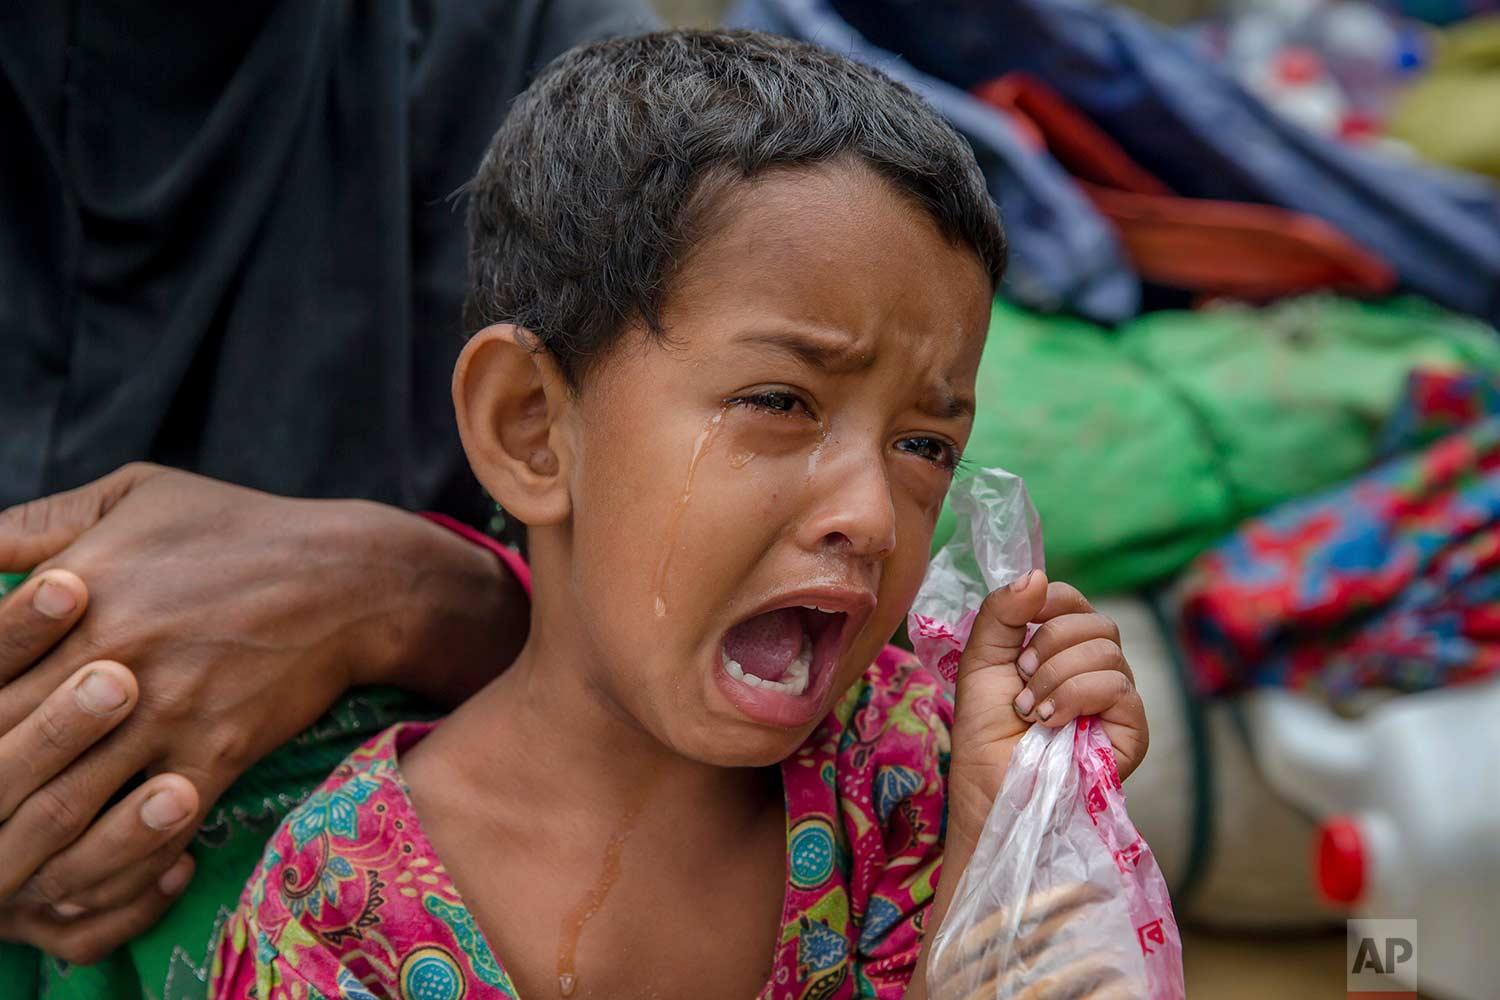 A Rohingya Muslim girl Toyiba Khatun cries while fighting fever as she waits with her family to be registered which will then allow them to proceed to build a shelter in Kutupalong refugee camp, Bangladesh, Friday, Oct. 20, 2017. (AP Photo/Dar Yasin)